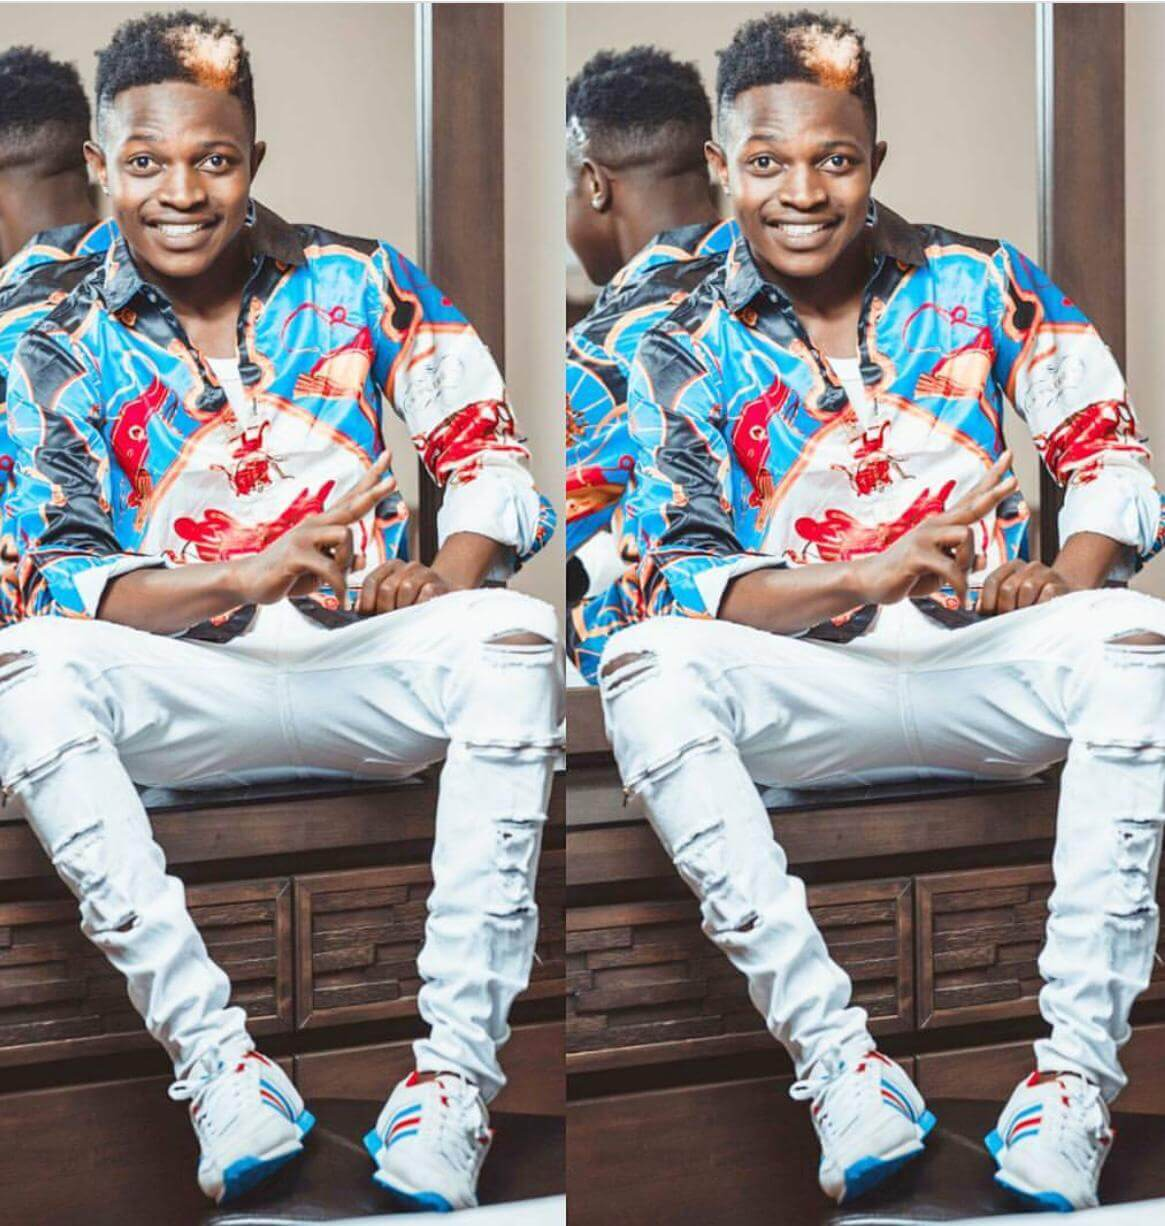 IMG 20180216 WA00191 - Kenya's youngest celebrity stylist. He has worked with Willy Paul